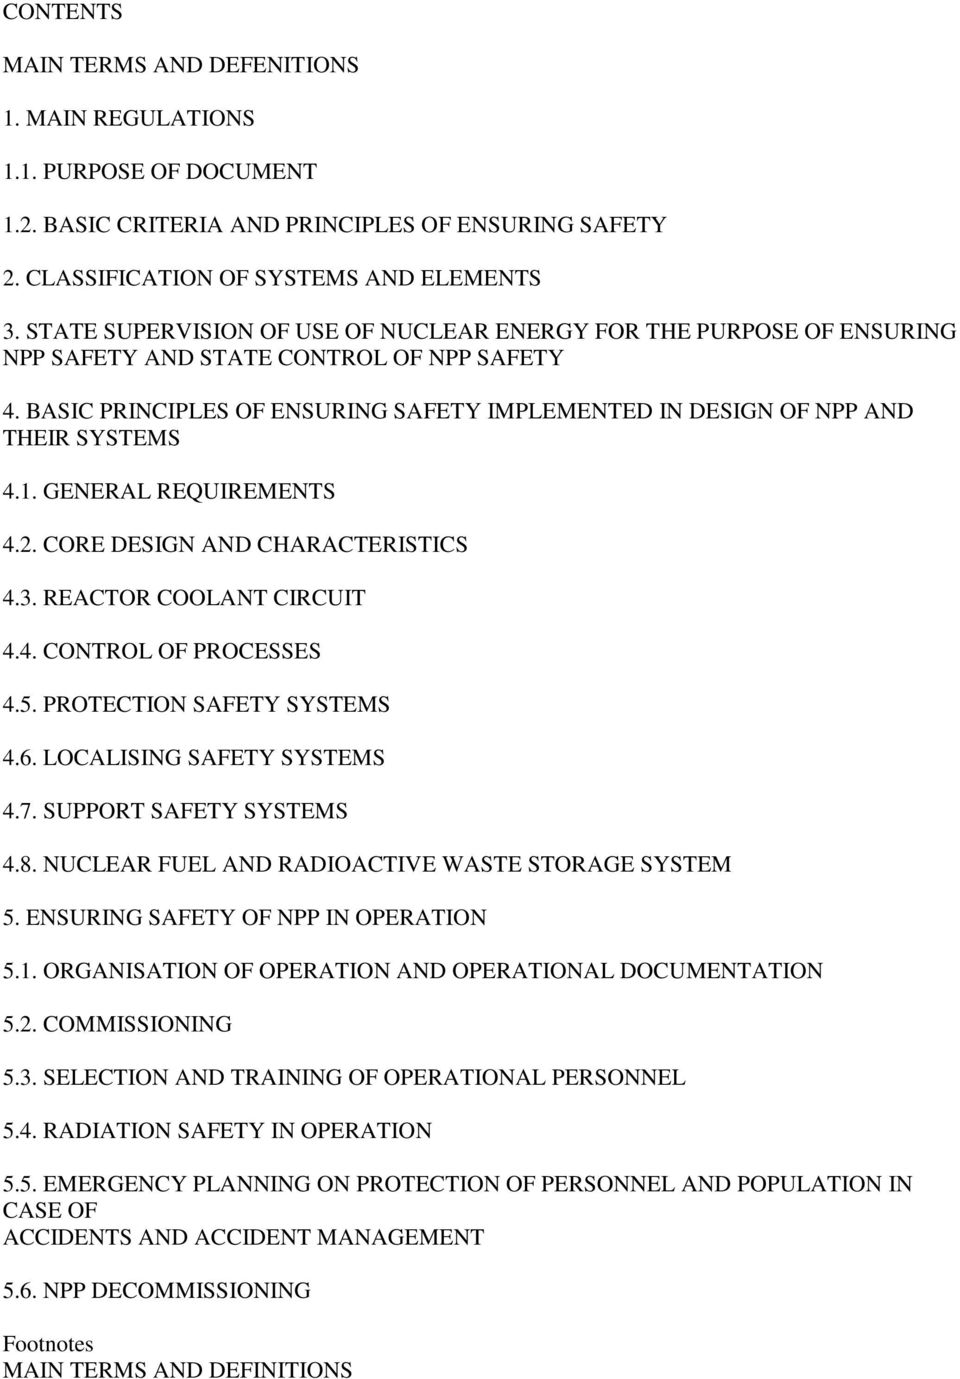 BASIC PRINCIPLES OF ENSURING SAFETY IMPLEMENTED IN DESIGN OF NPP AND THEIR SYSTEMS 4.1. GENERAL REQUIREMENTS 4.2. CORE DESIGN AND CHARACTERISTICS 4.3. REACTOR COOLANT CIRCUIT 4.4. CONTROL OF PROCESSES 4.